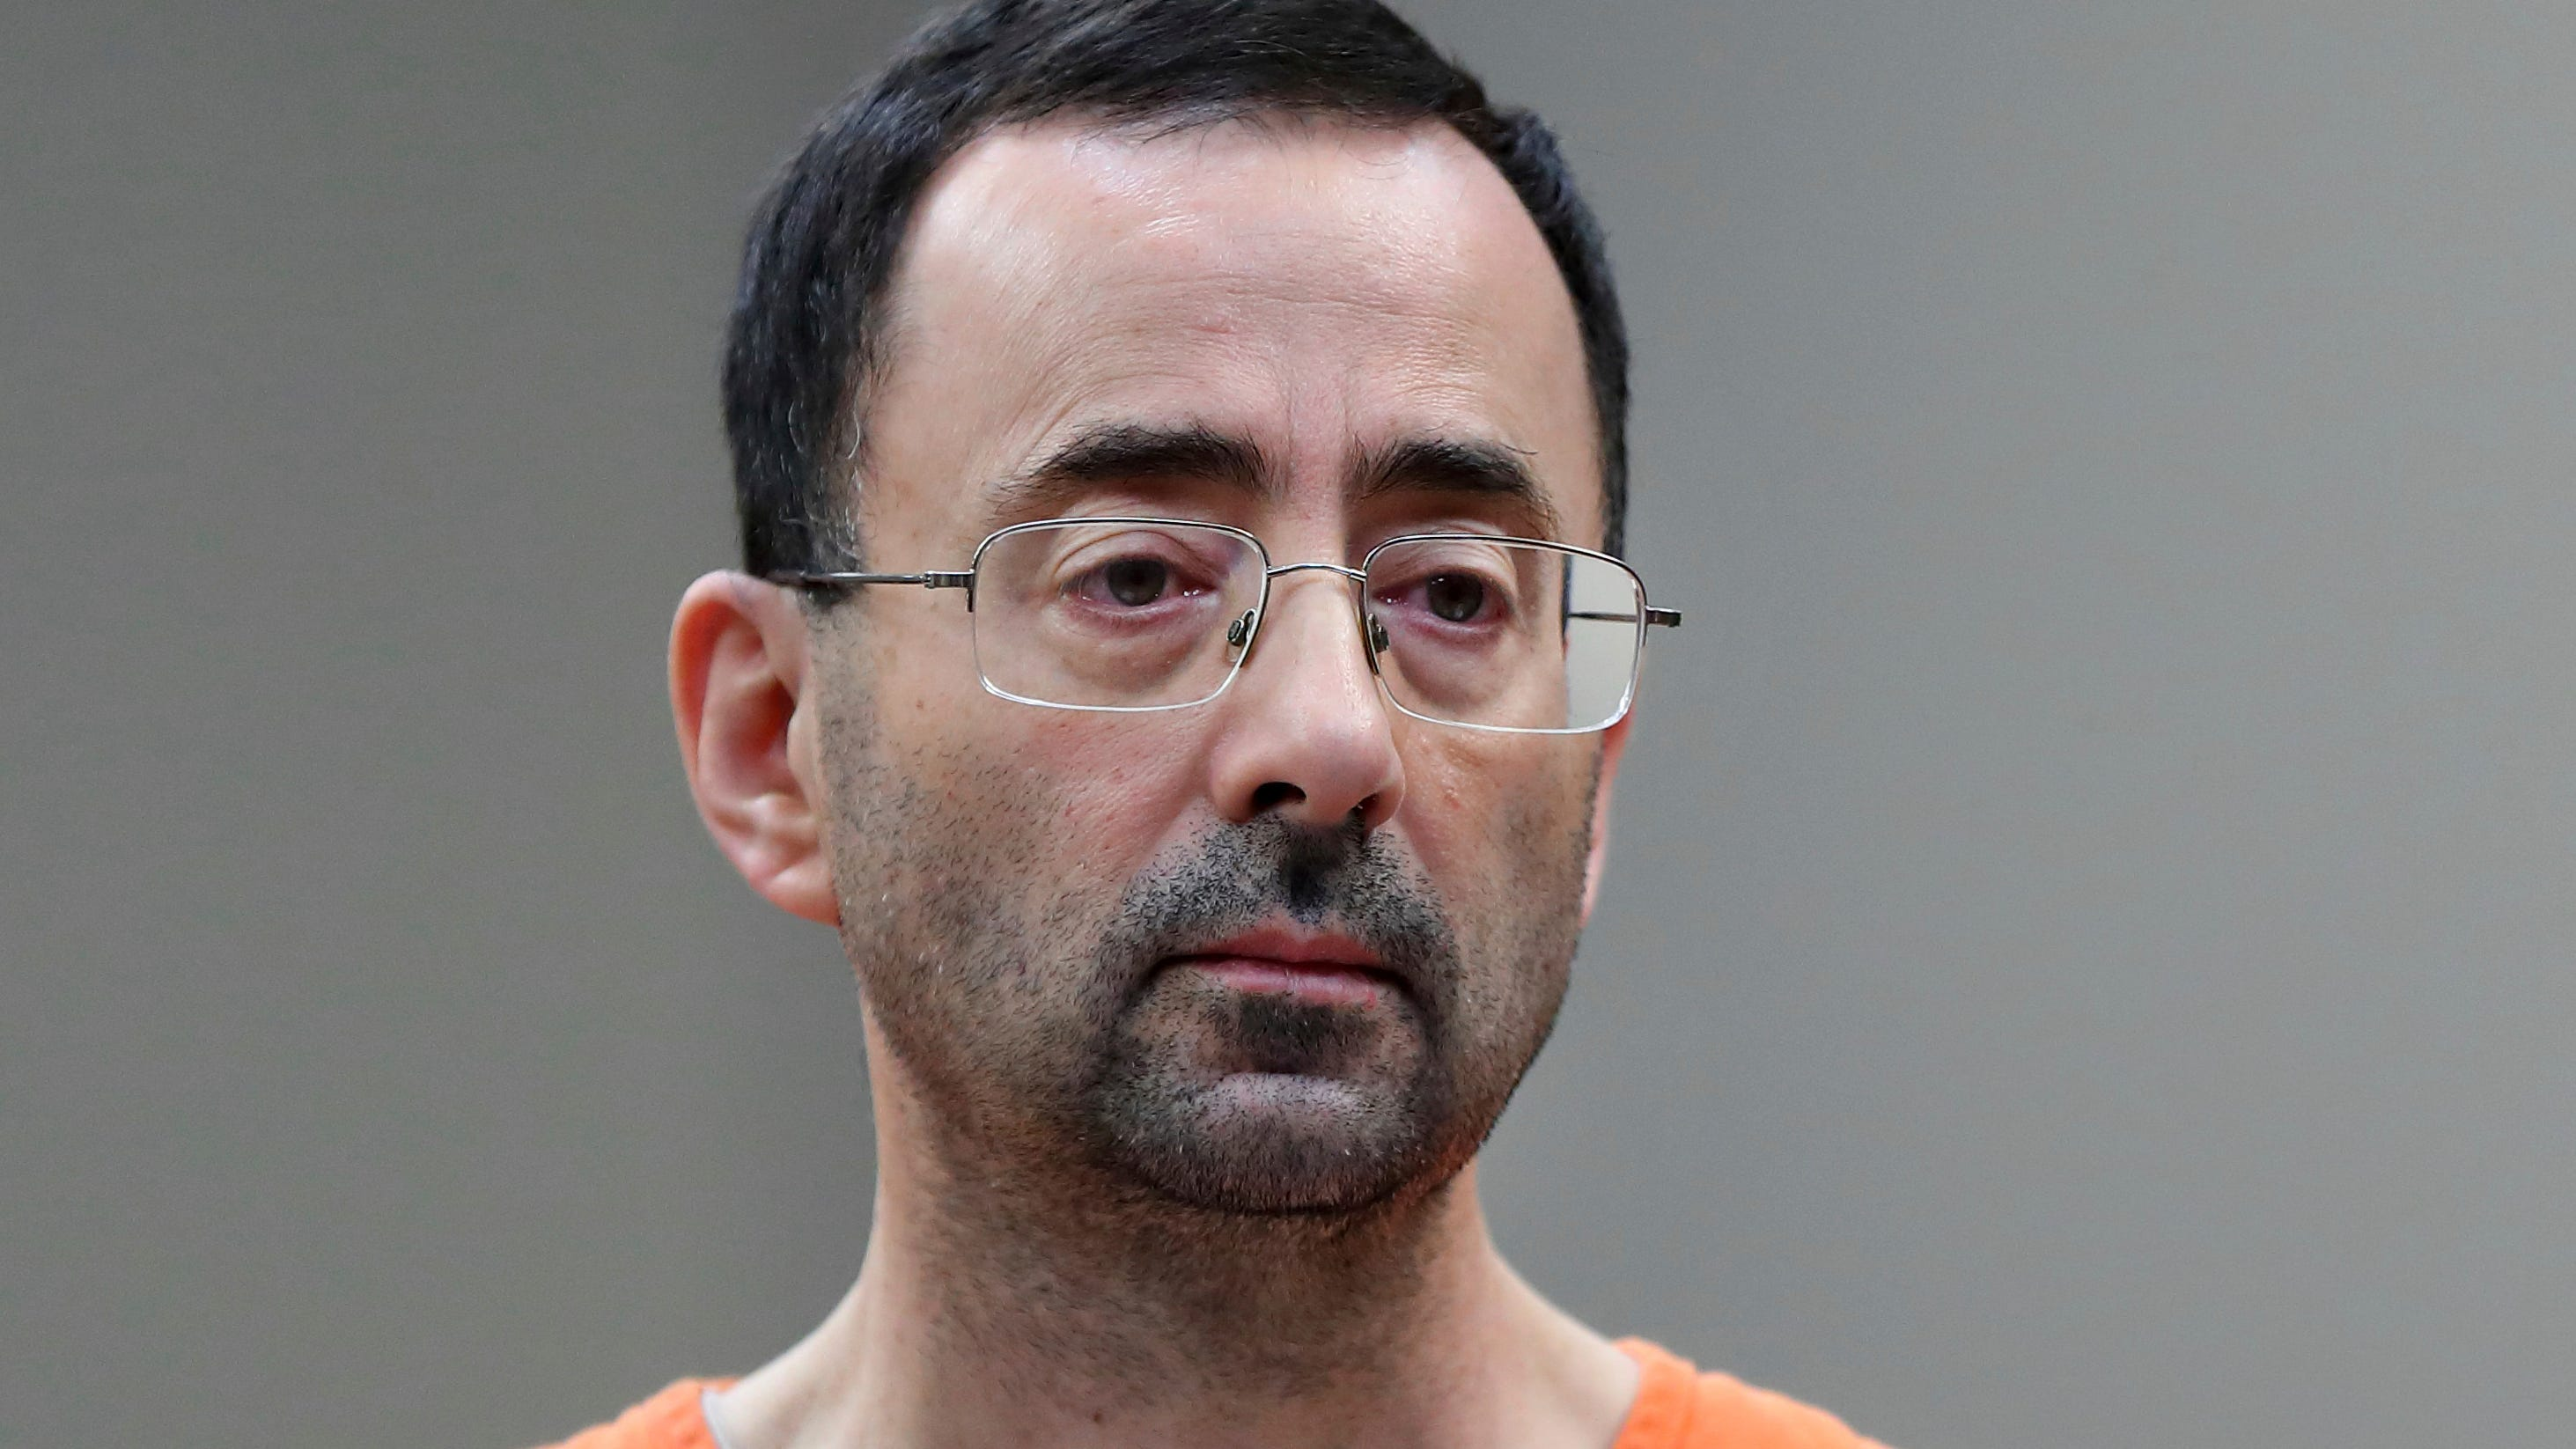 Prison experts predicted Nassar could go to another high-security prison, possibly in Florida or Indiana